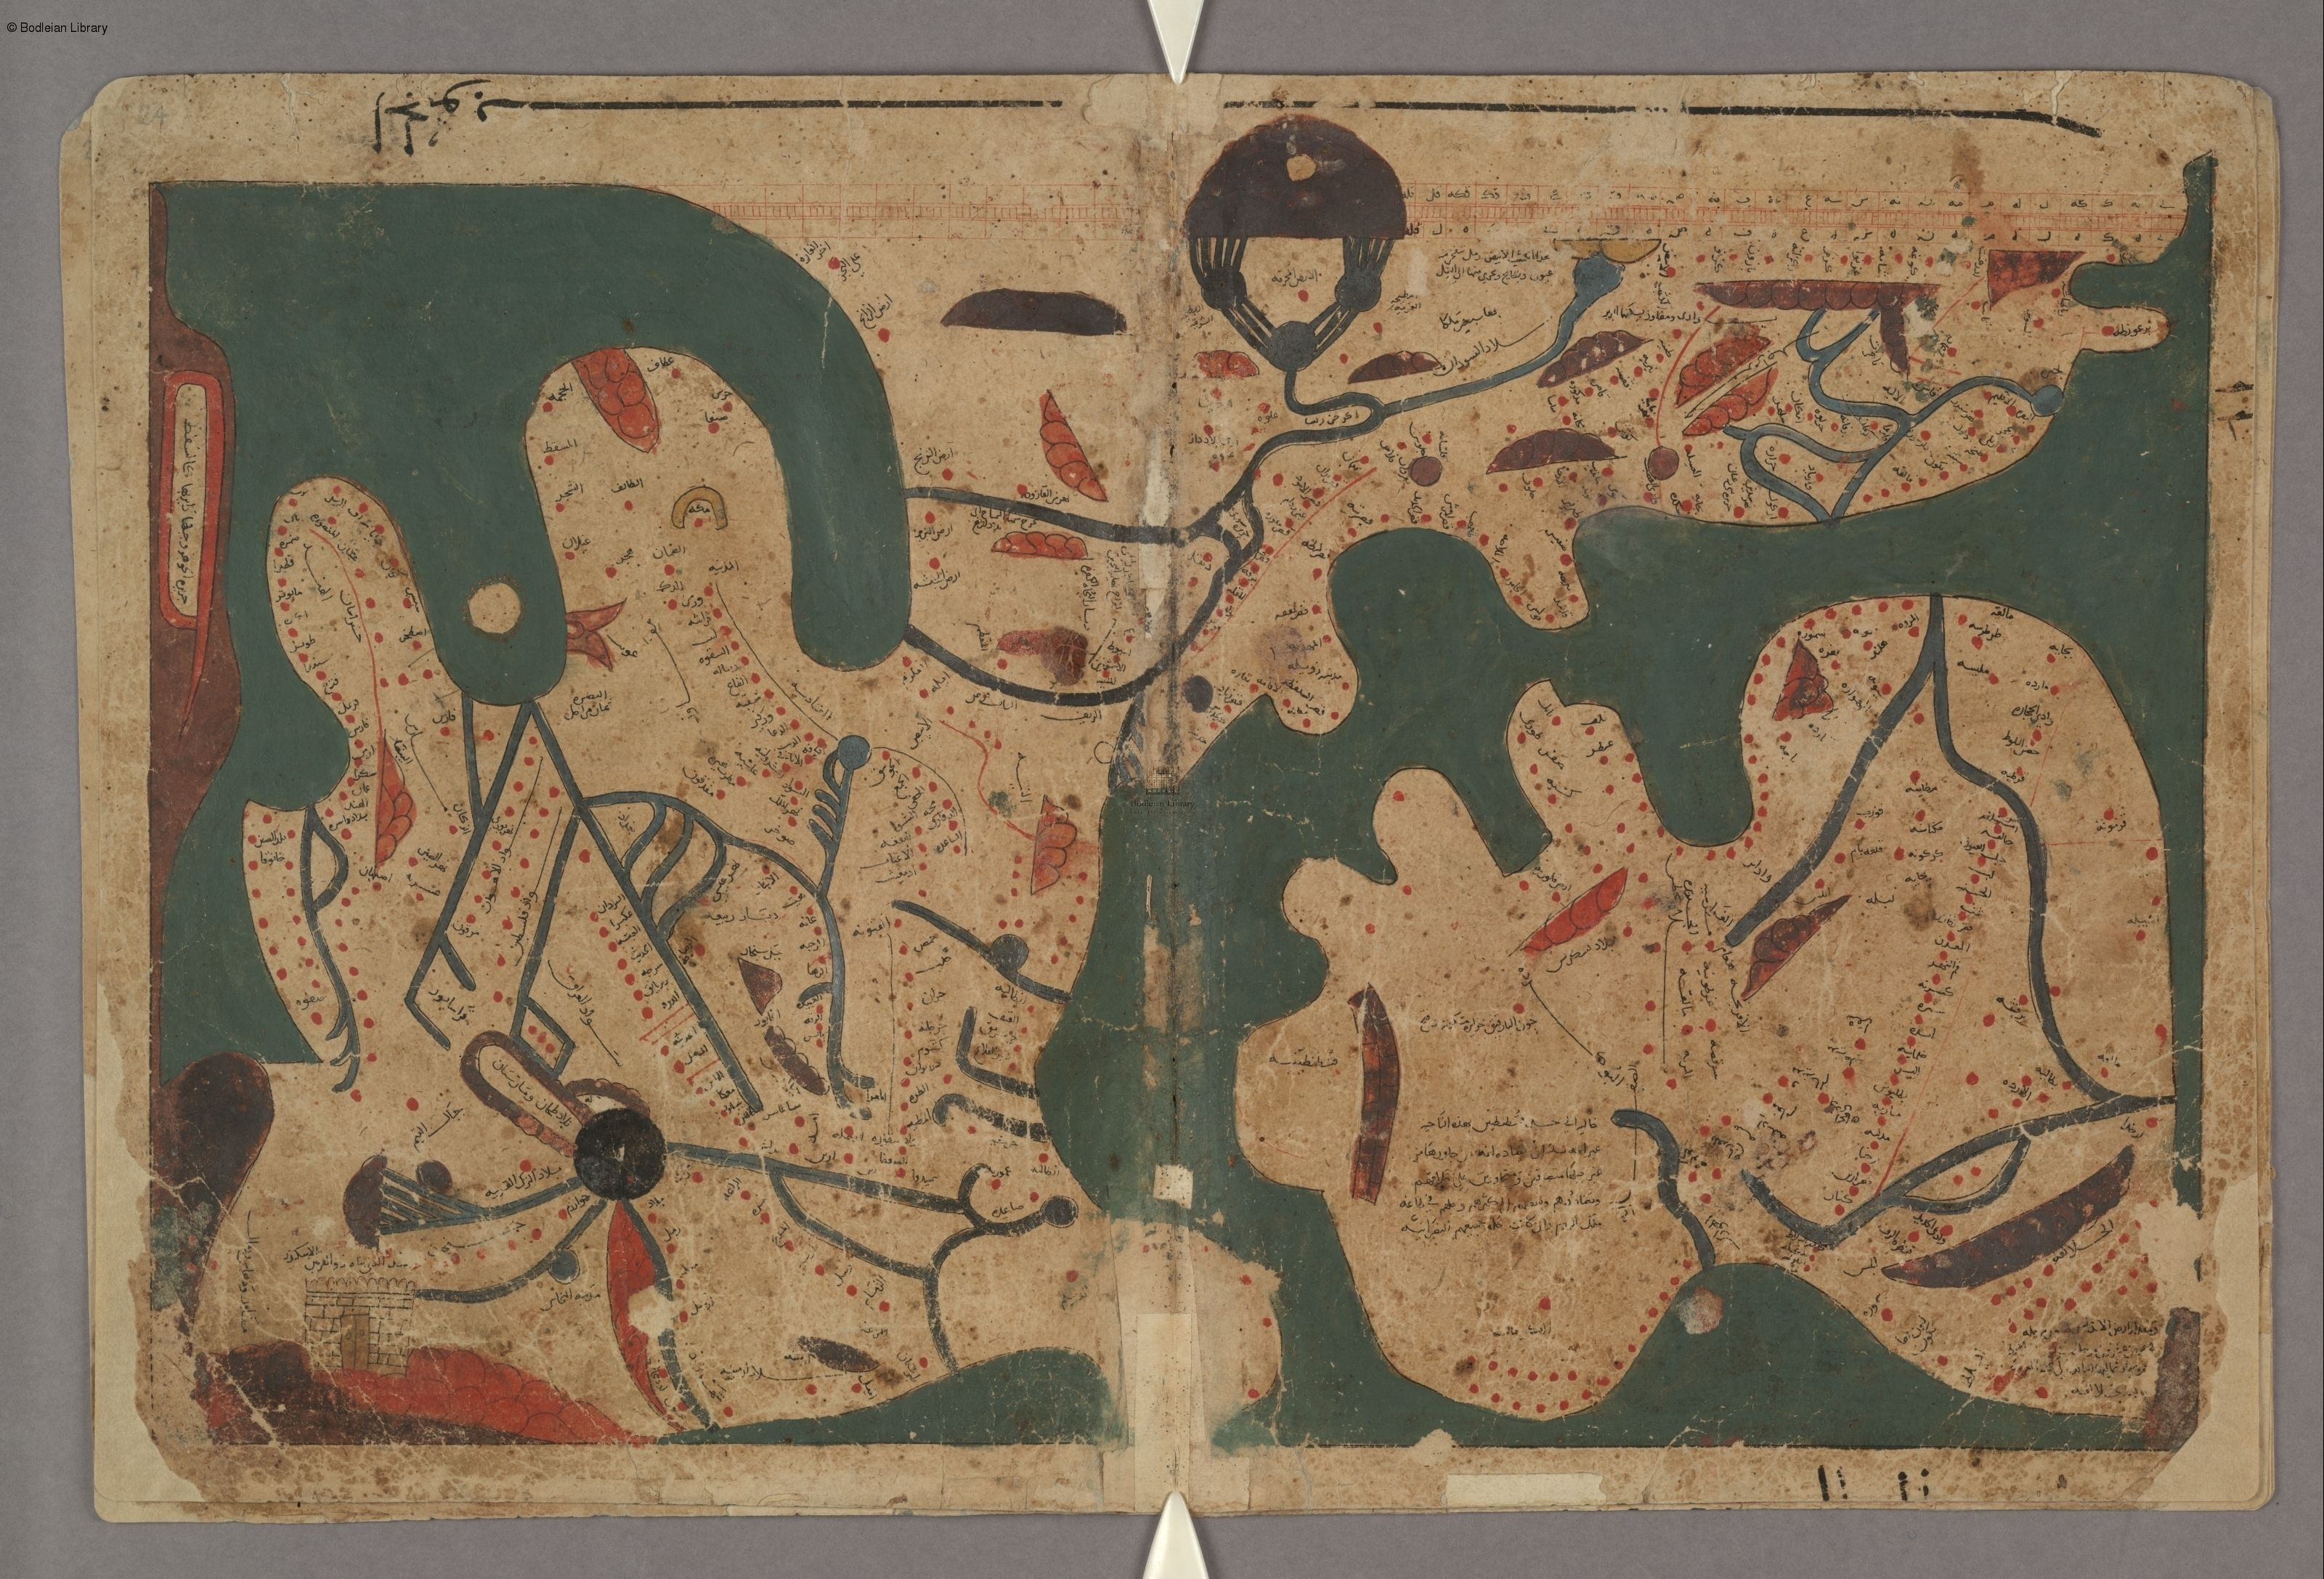 Medieval islamic views of the cosmos book 2 chapter 2 on the the oldest extant arab rectangular map of the world from kitb gharib al funn wa mula al uyn the book of curiosities of the sciences and marvels gumiabroncs Images